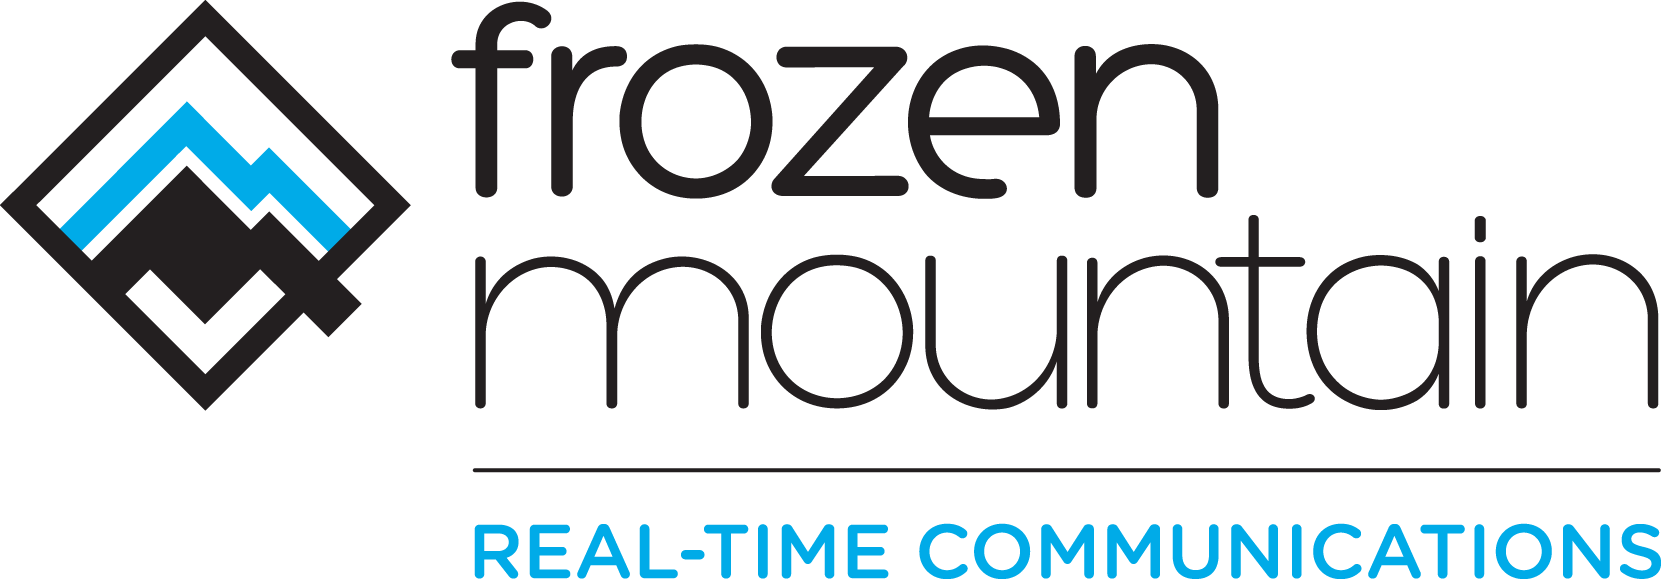 Frozen Mountain Software Ltd.